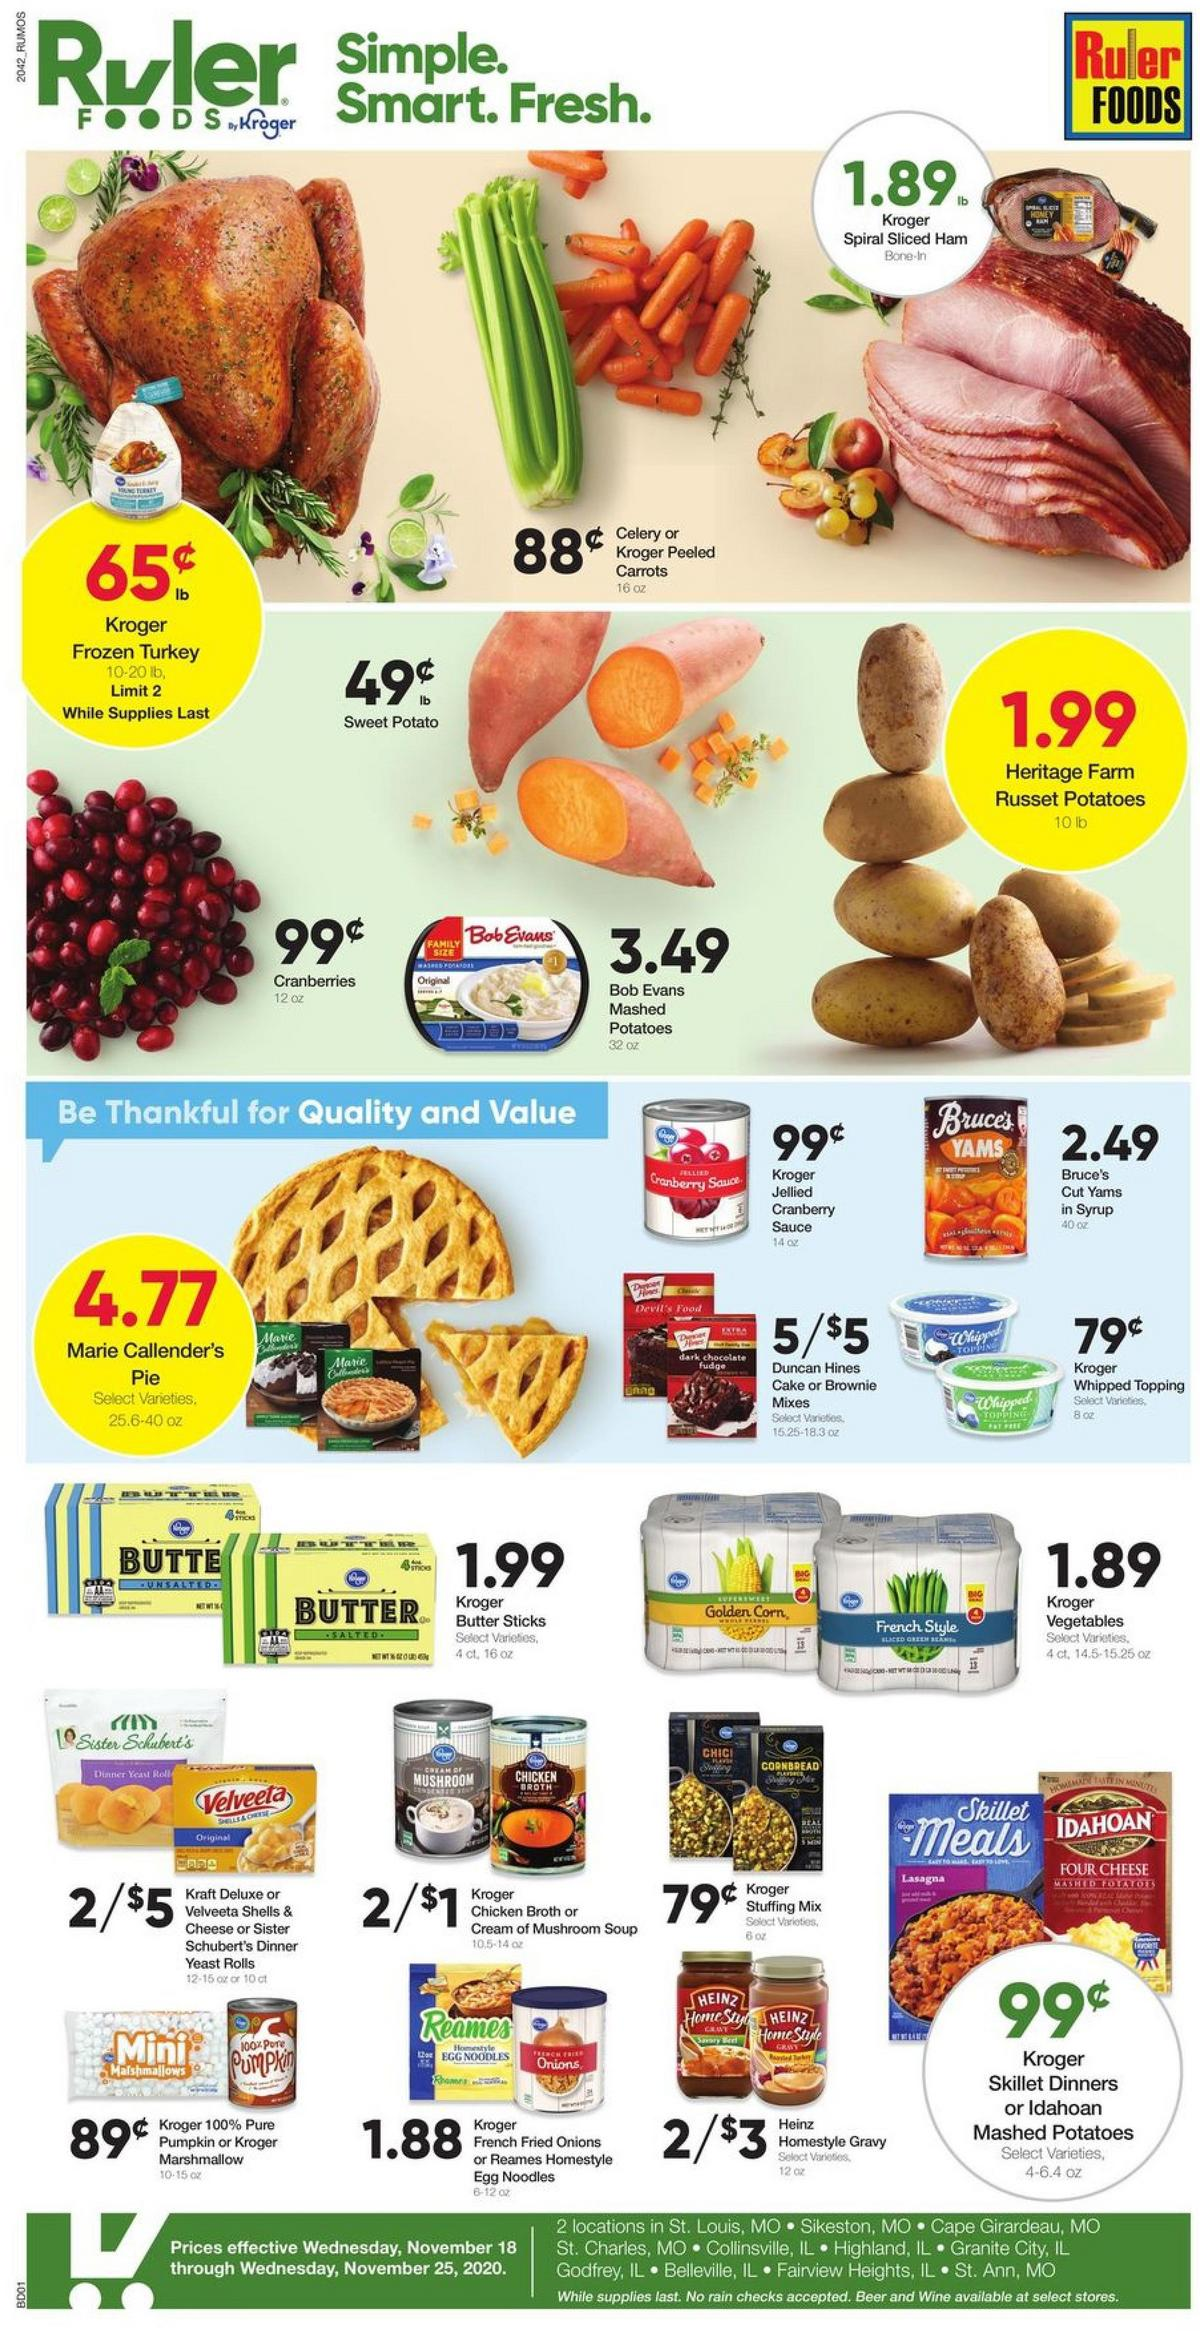 Ruler Foods Weekly Ad from November 18